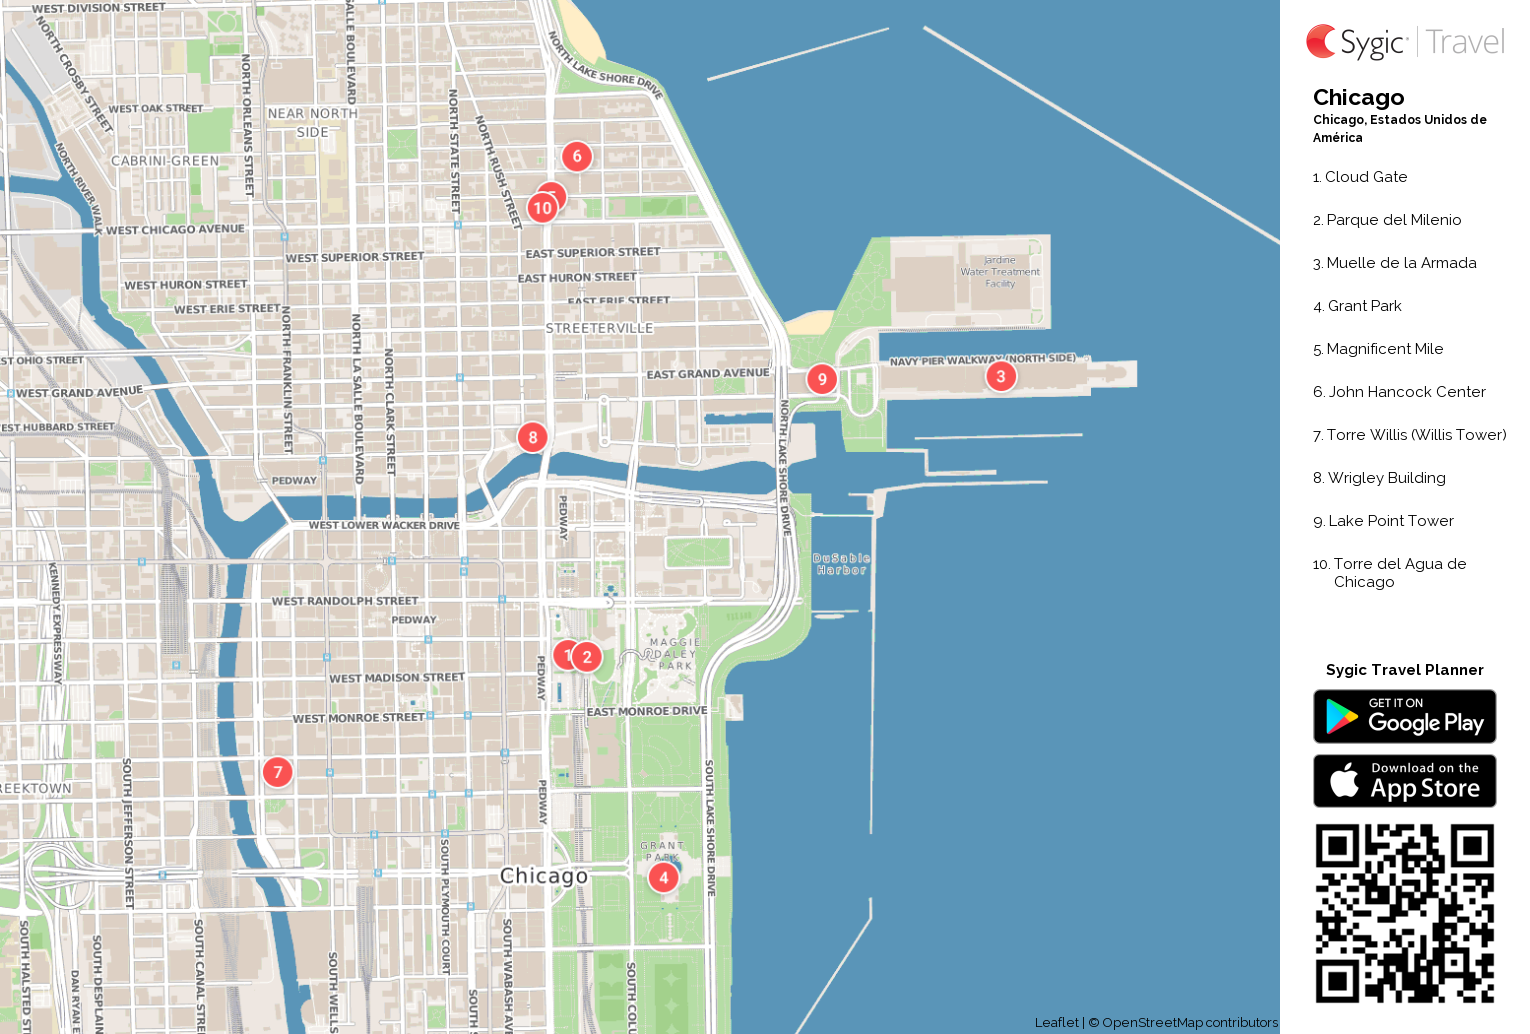 Chicago: Mapa turístico para imprimir | Sygic Travel